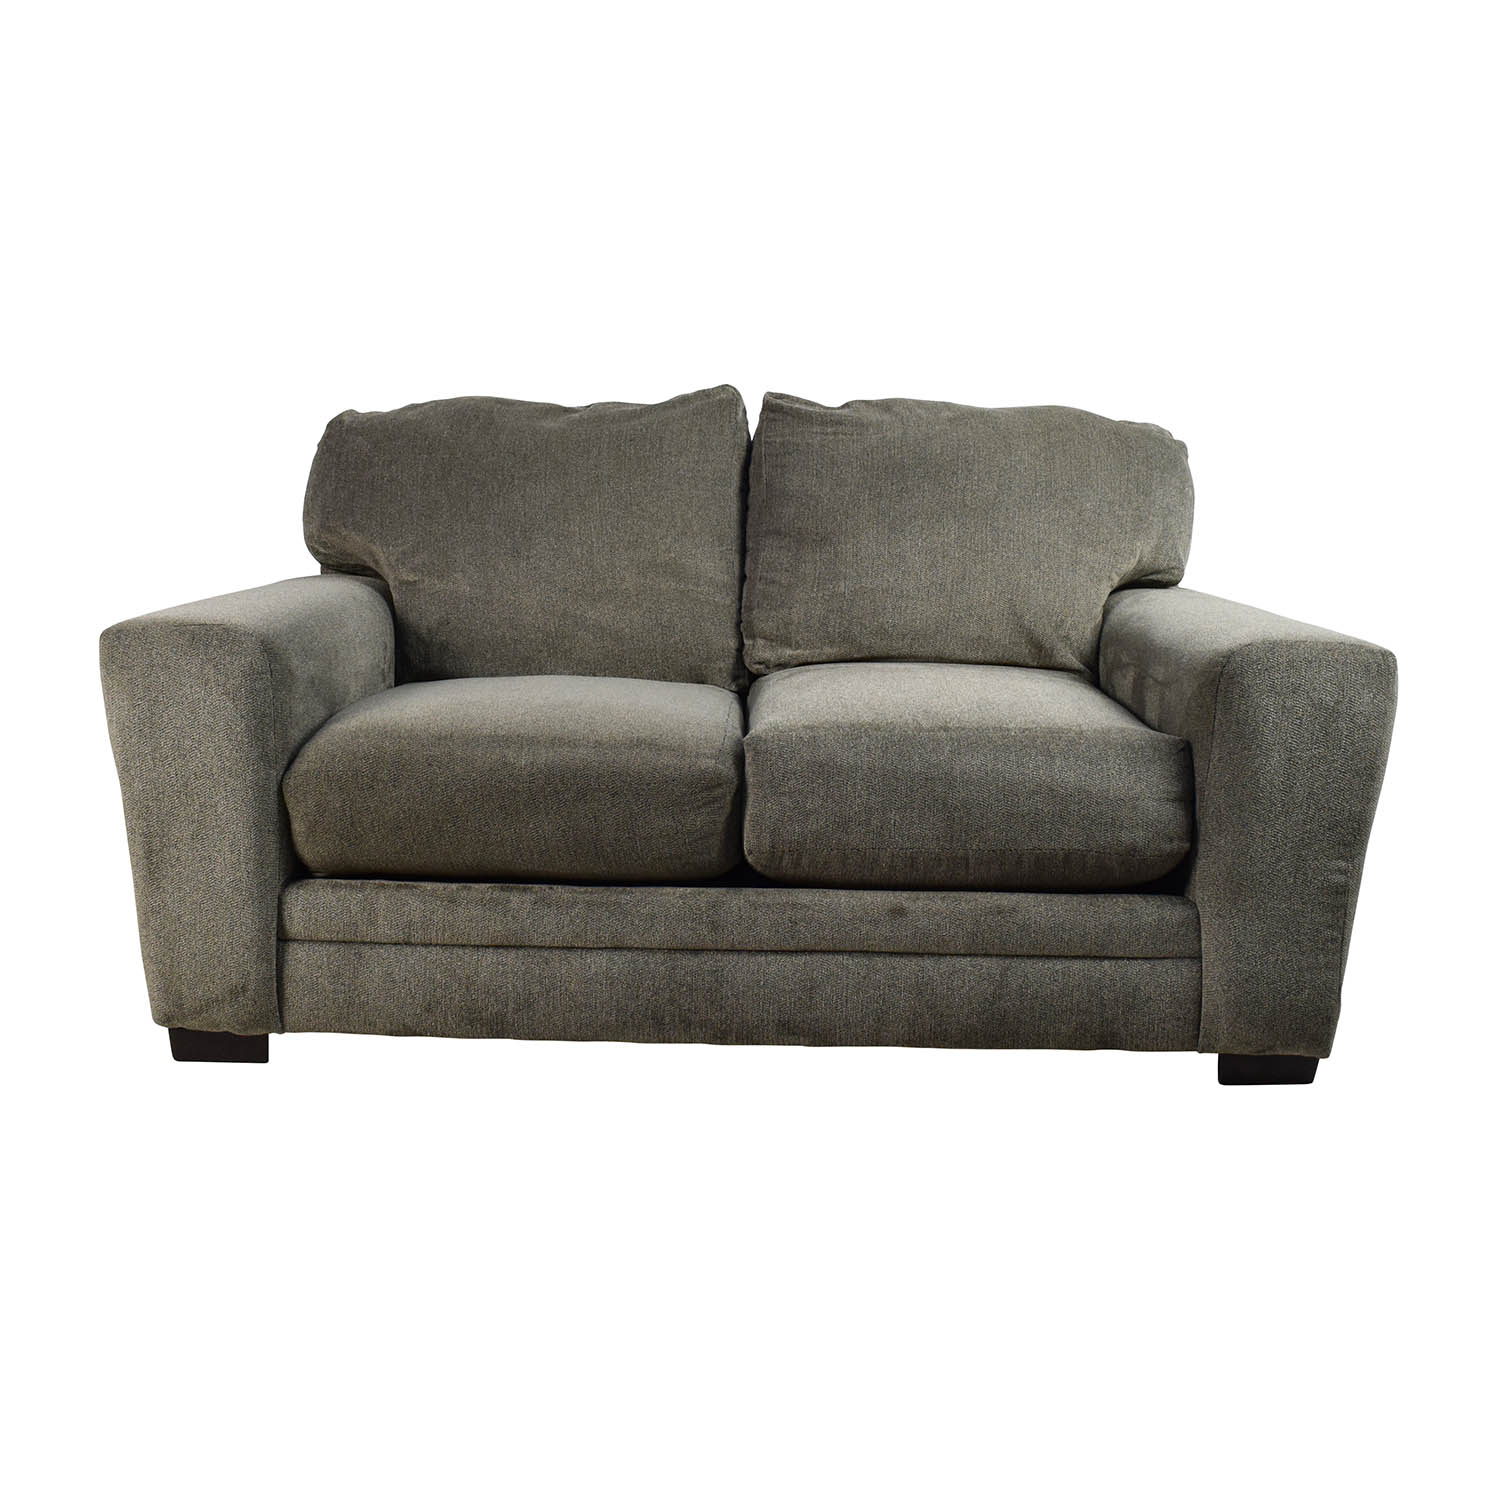 44 Off Bob S Discount Furniture Bob S Furniture Gray Jackson